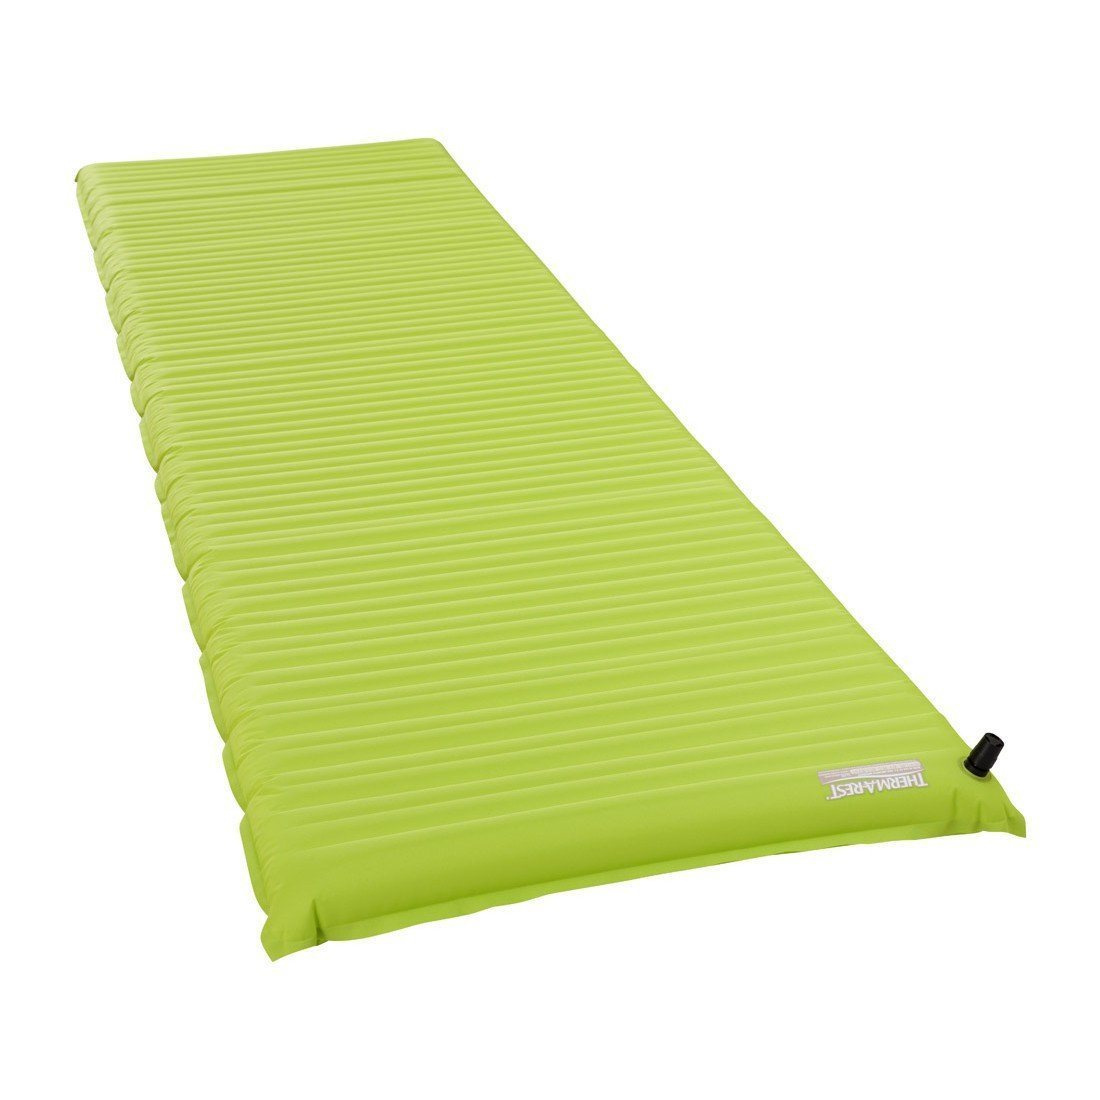 Thermarest NeoAir Venture Regular camping mat, shown laid flat and inflated